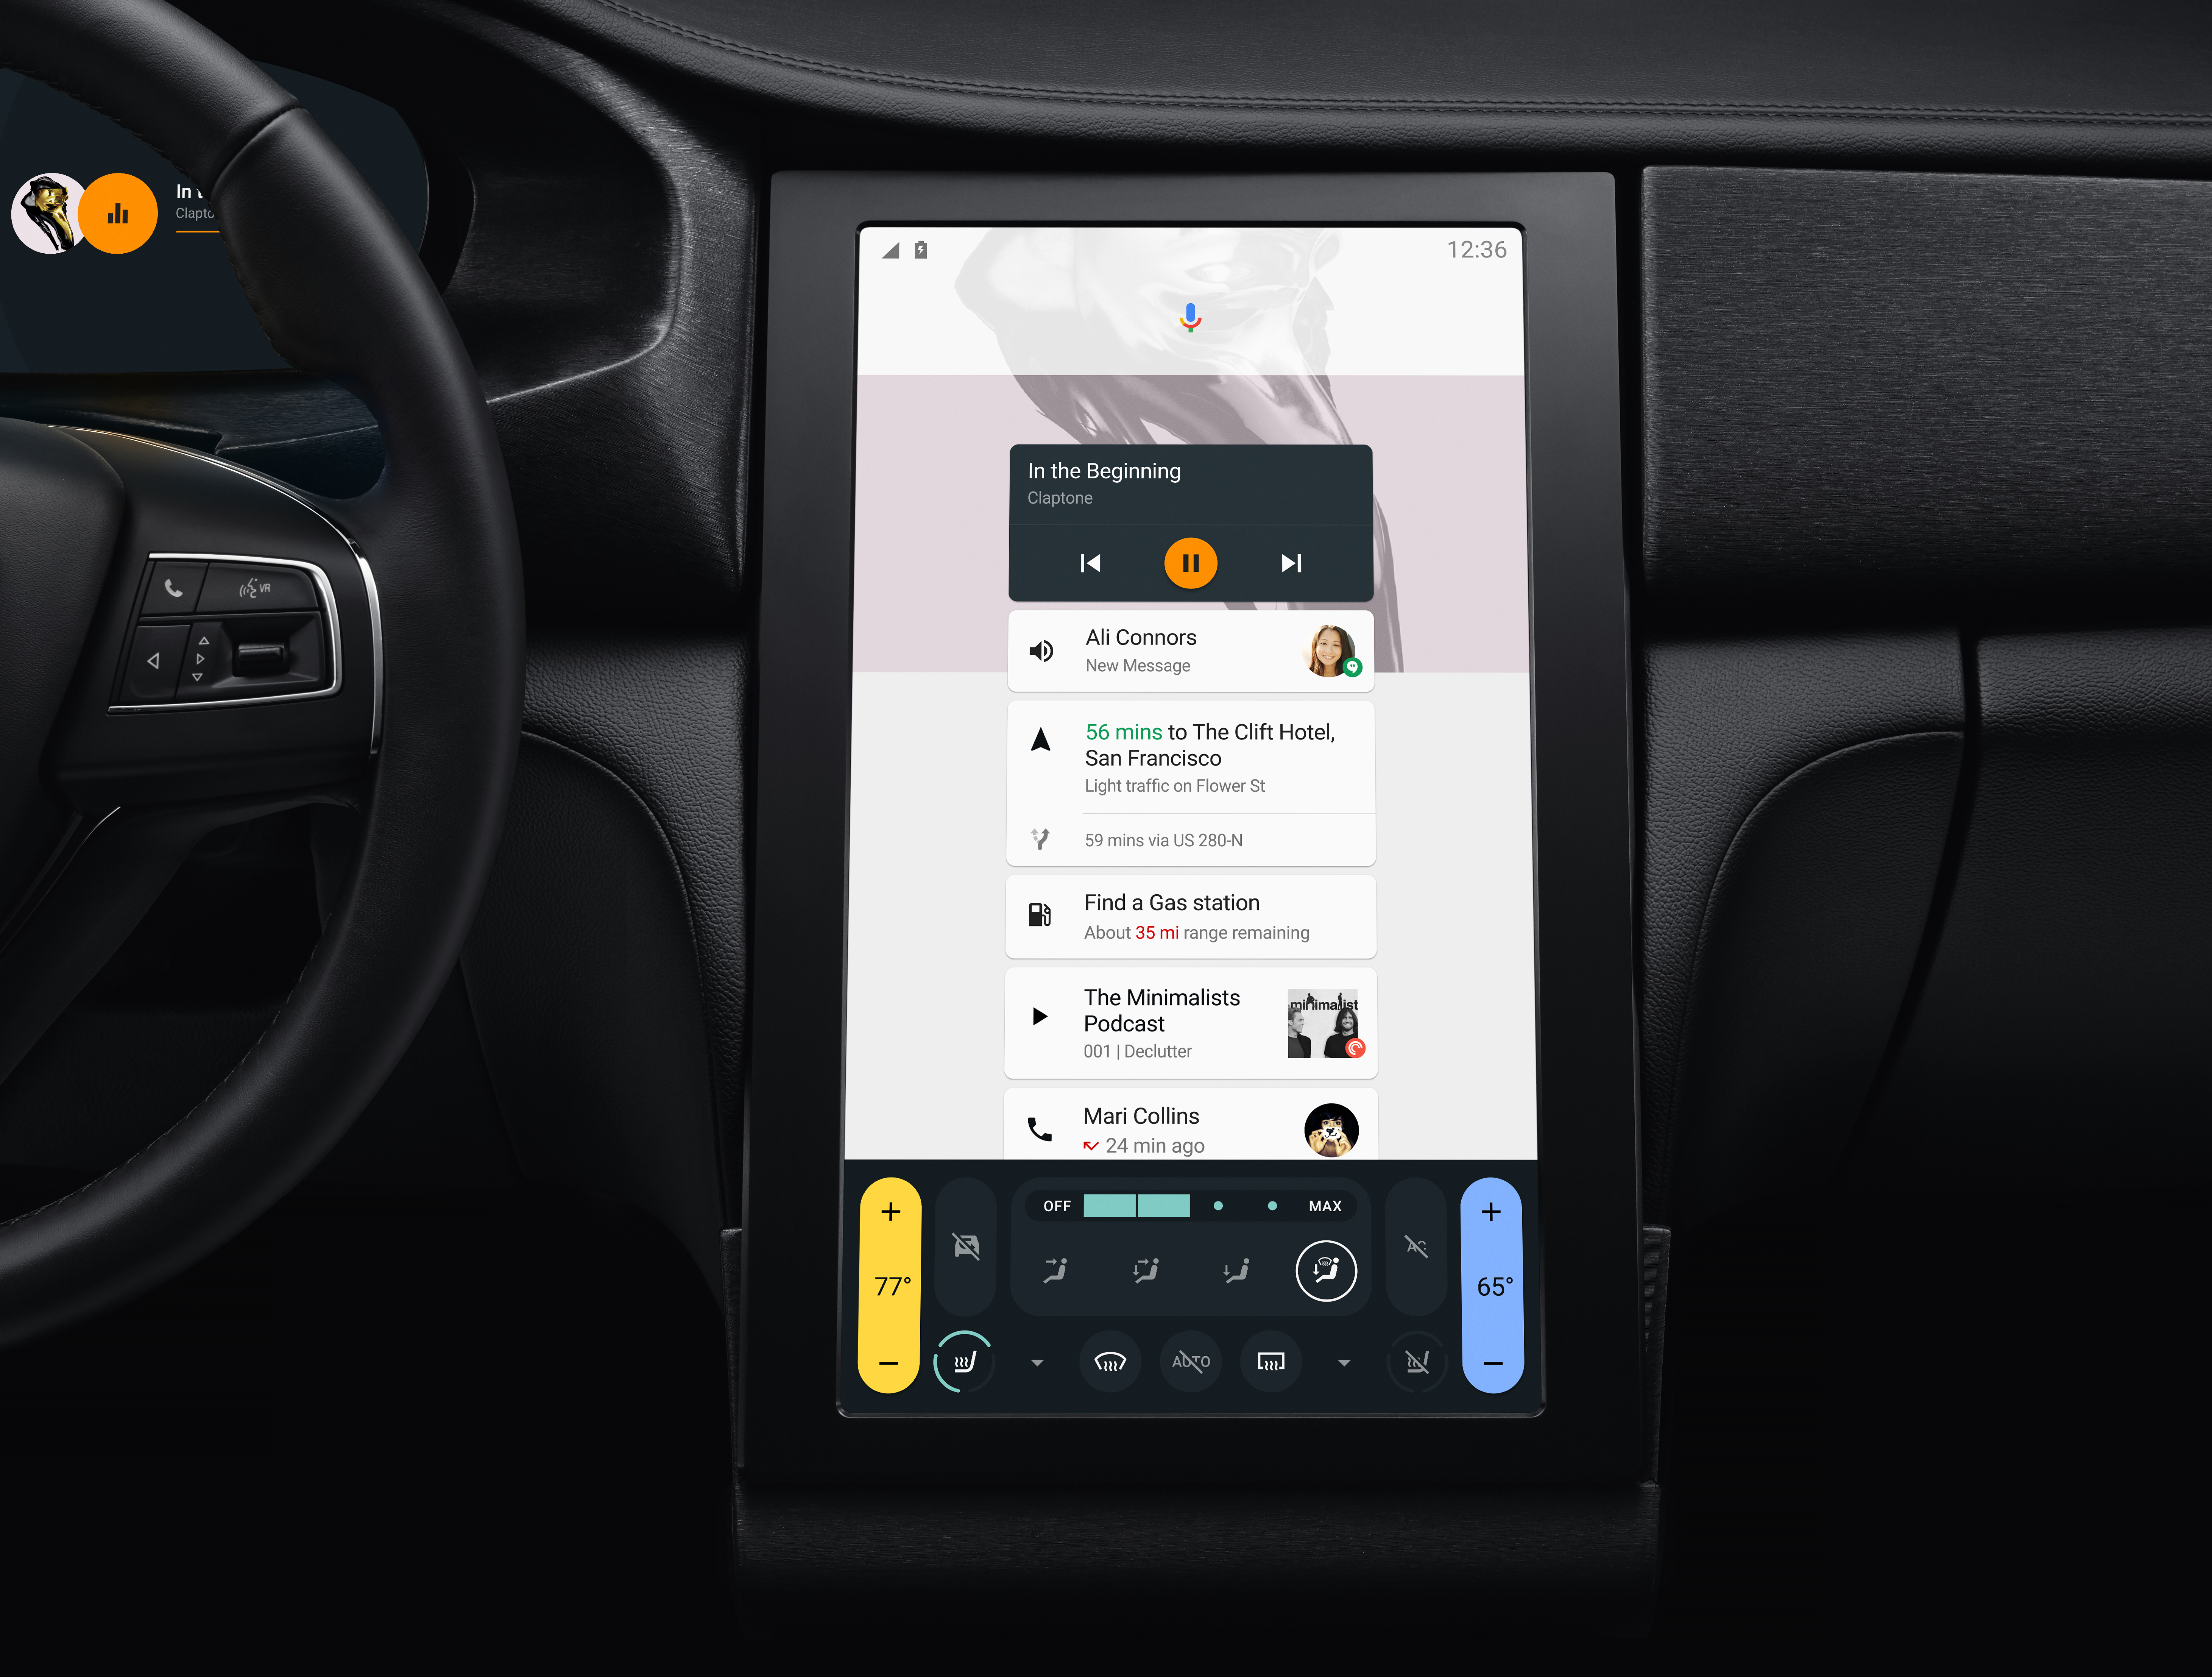 Android N in the car